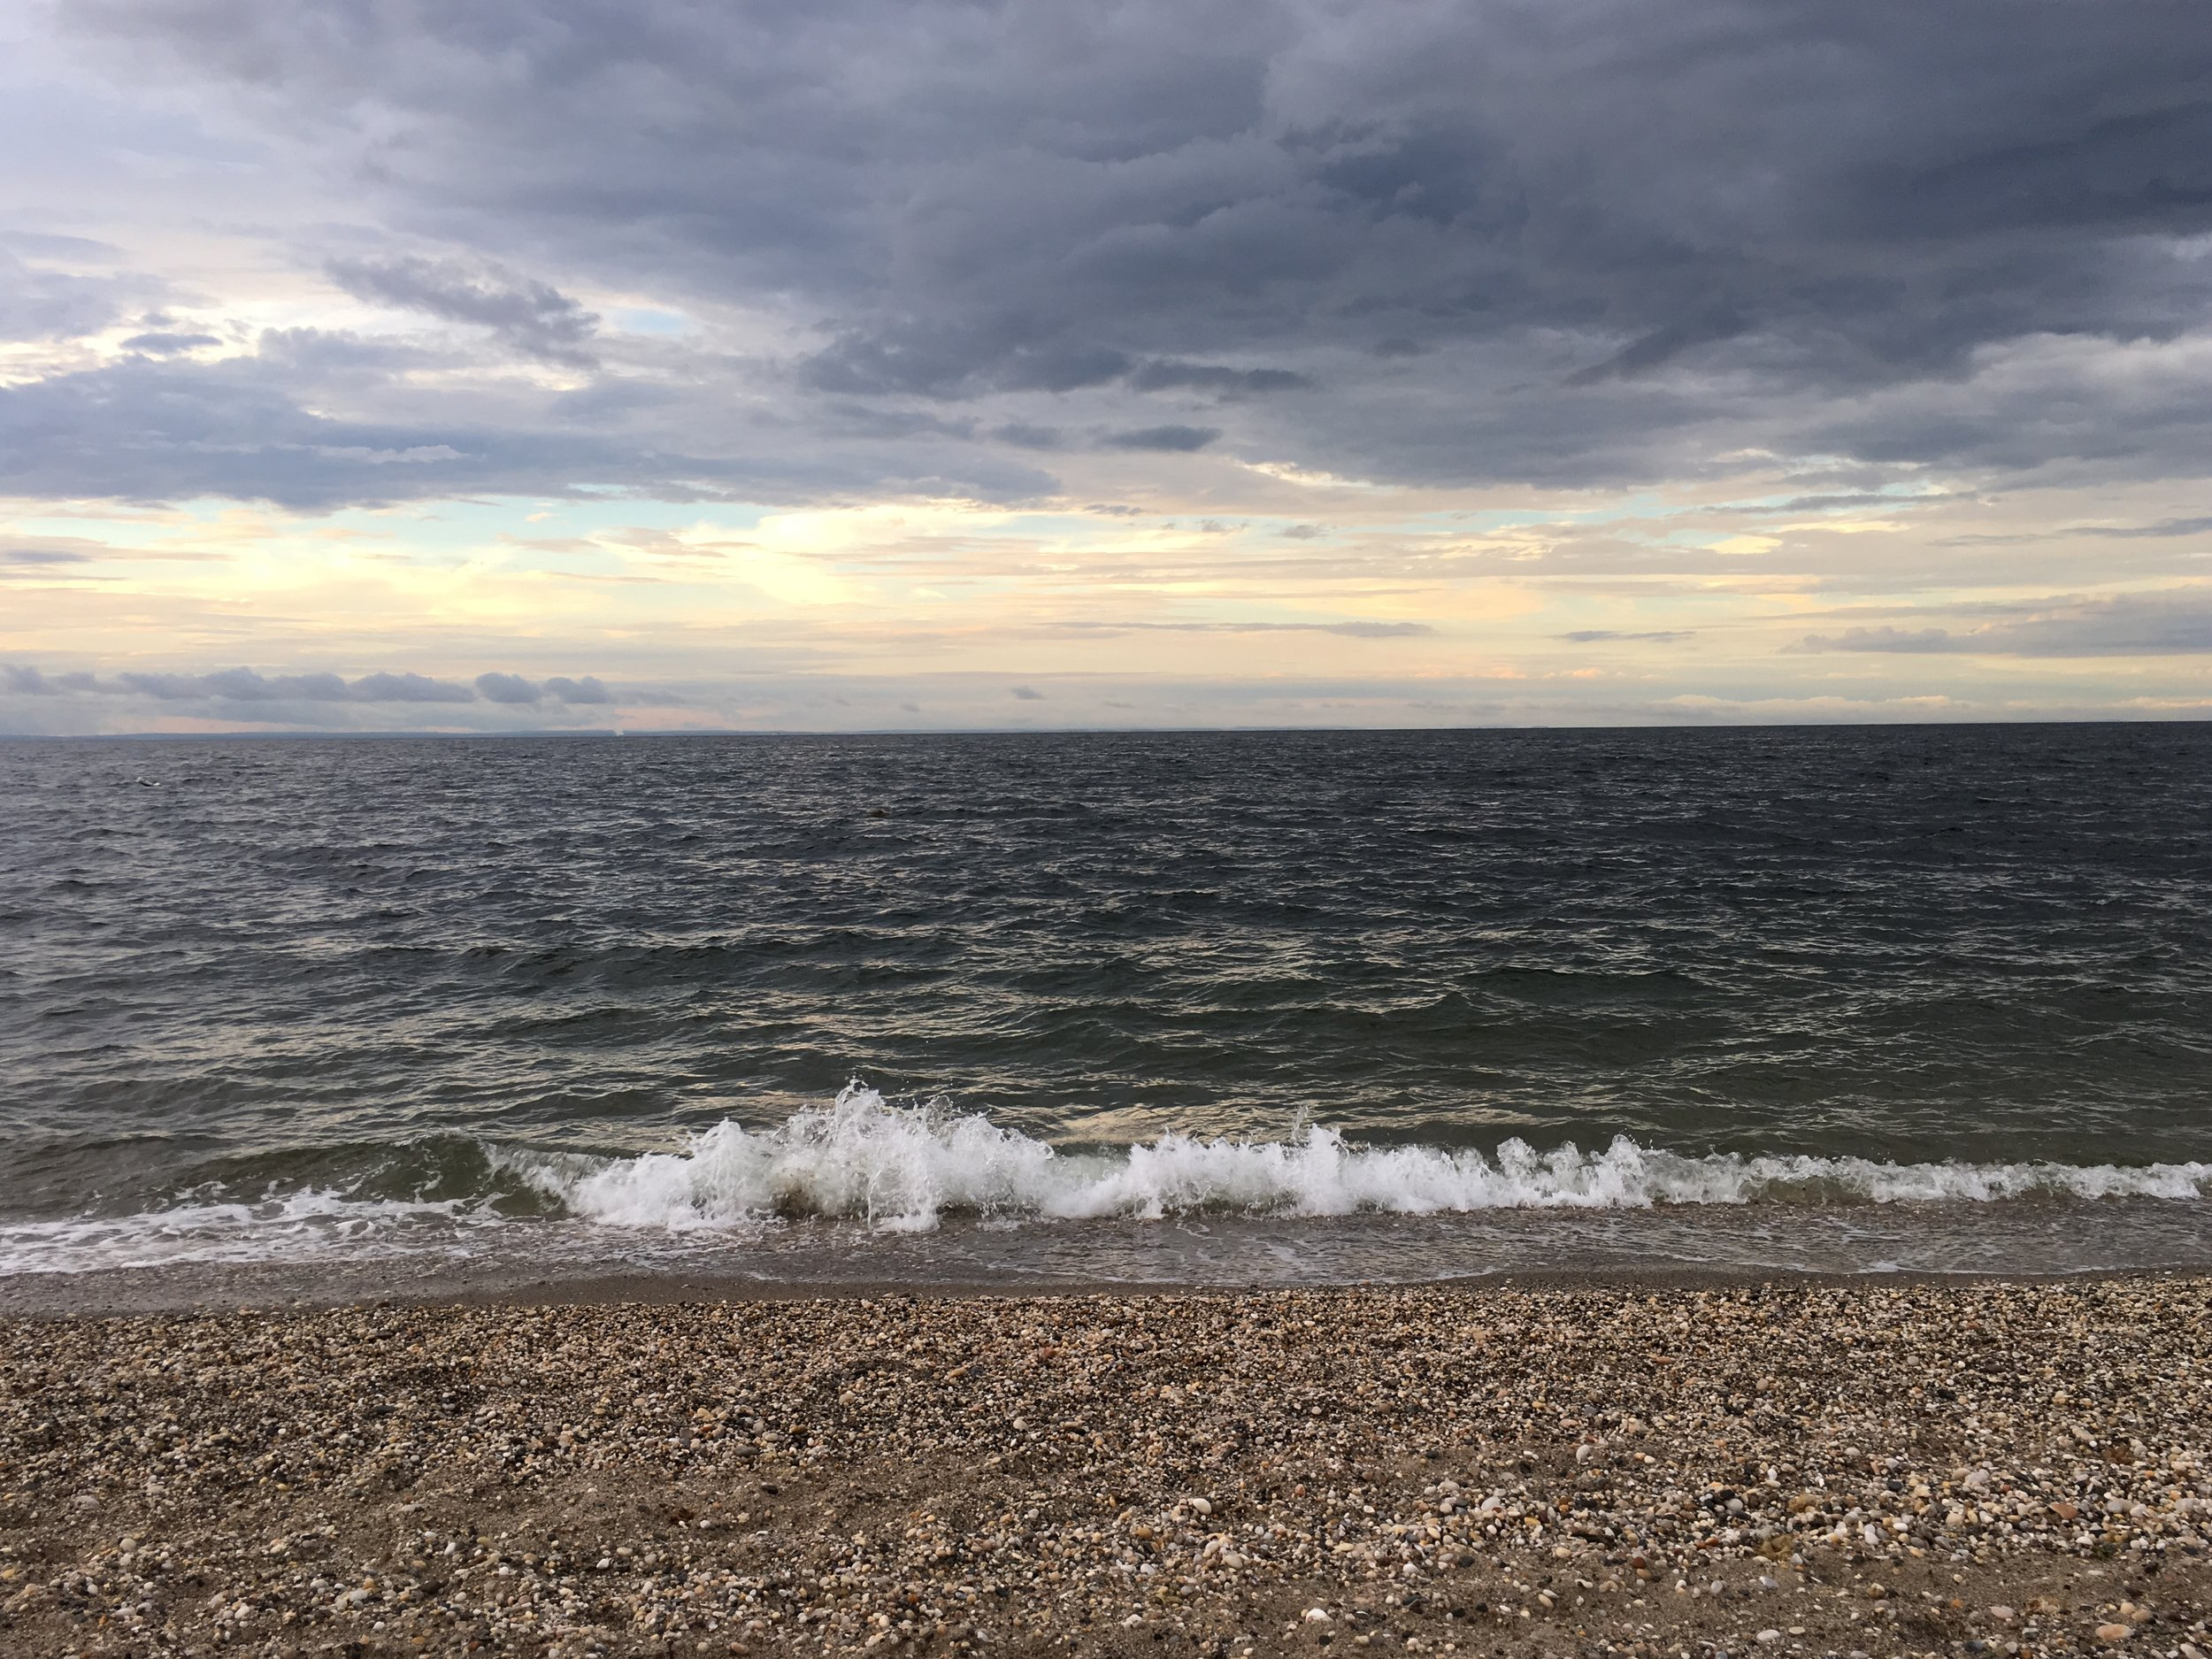 Long island sound, summer 2018